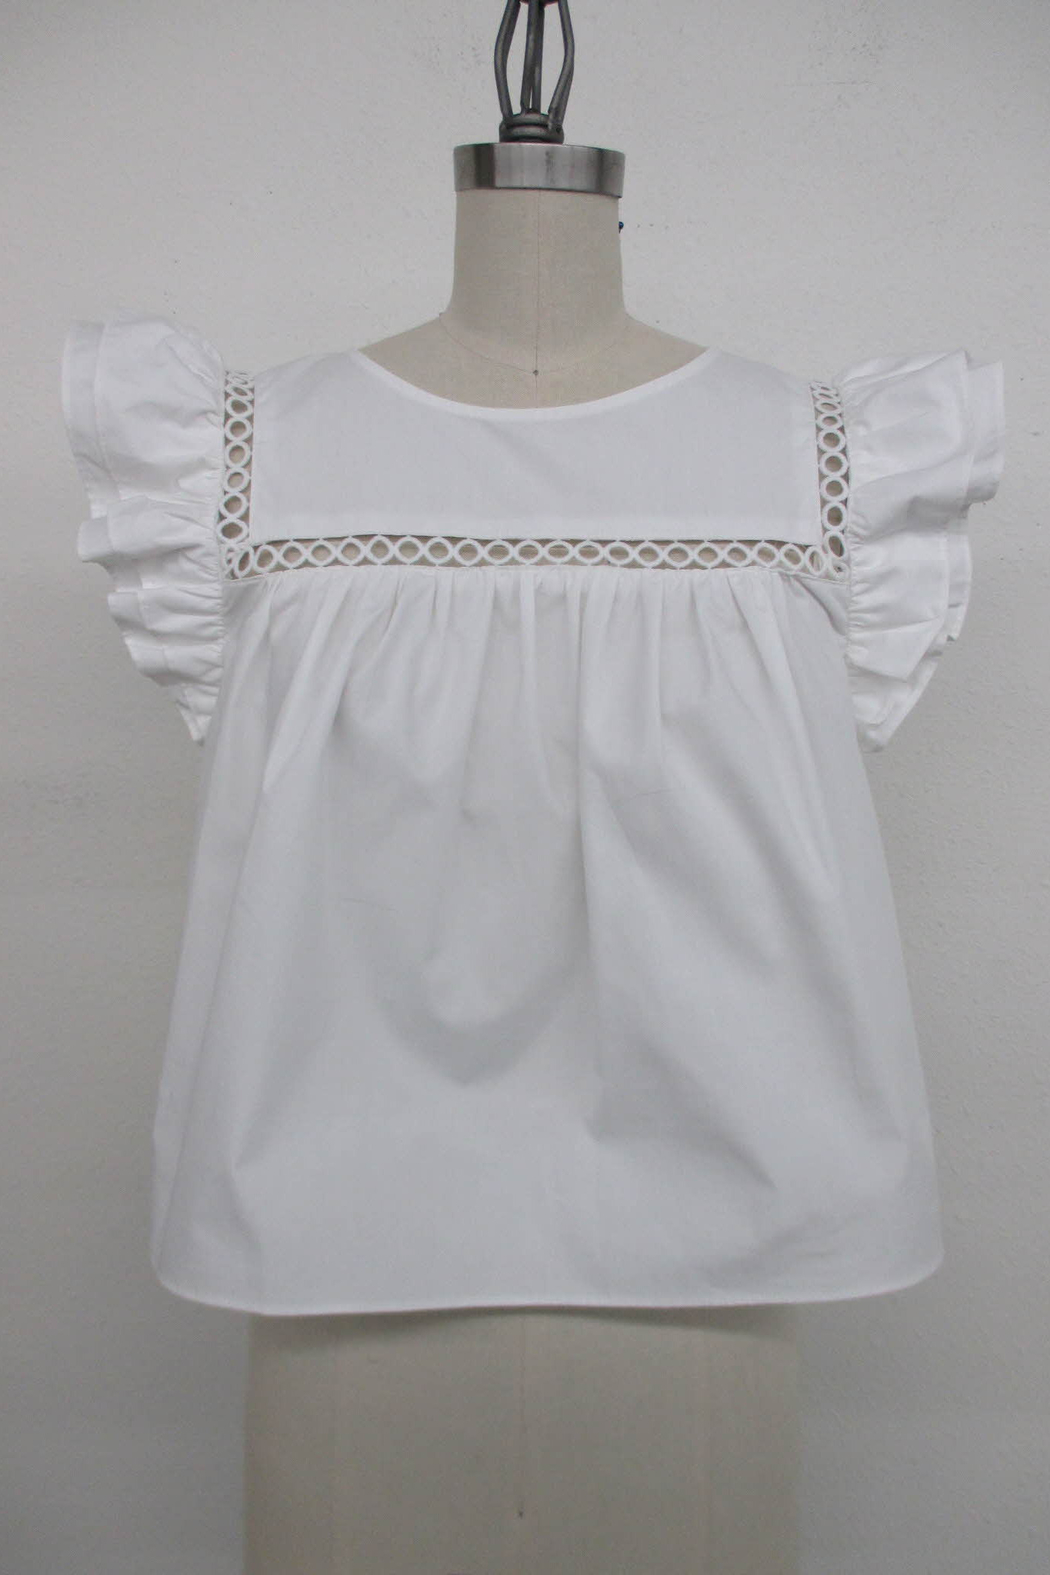 La Ven Cropped Baby Doll Ruffle Sleeve Blouse - Main Image